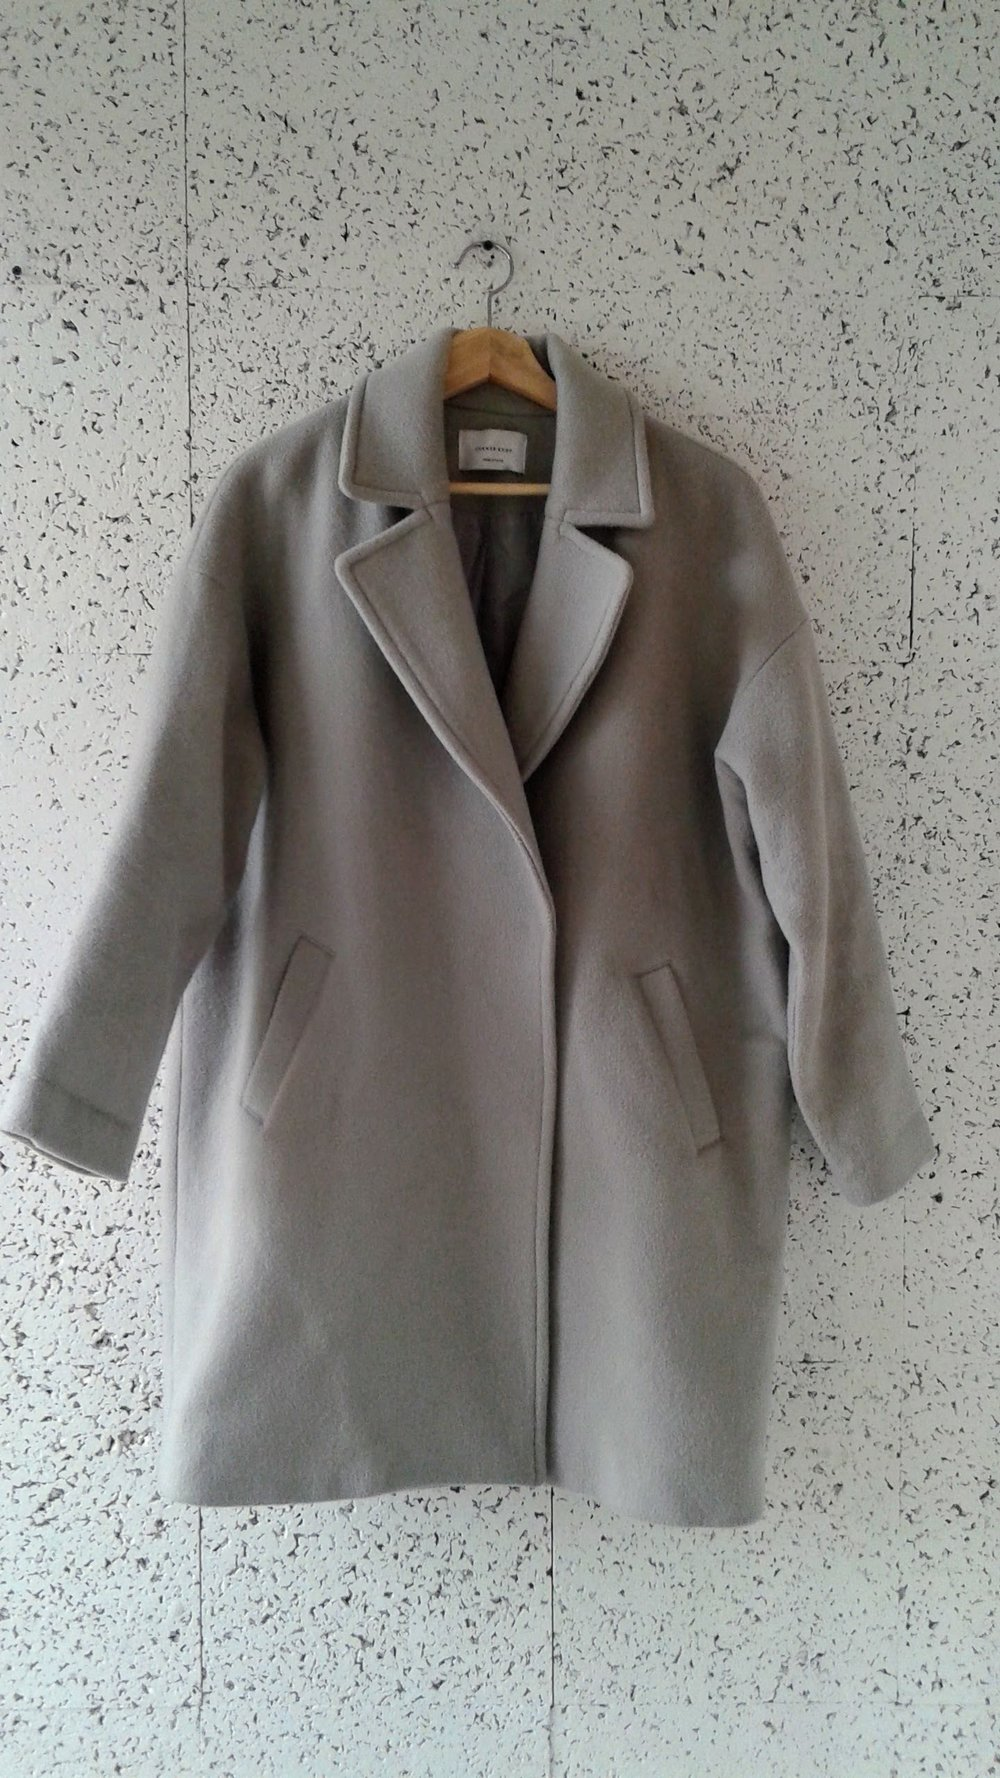 Corner Shop coat; Size M, $48